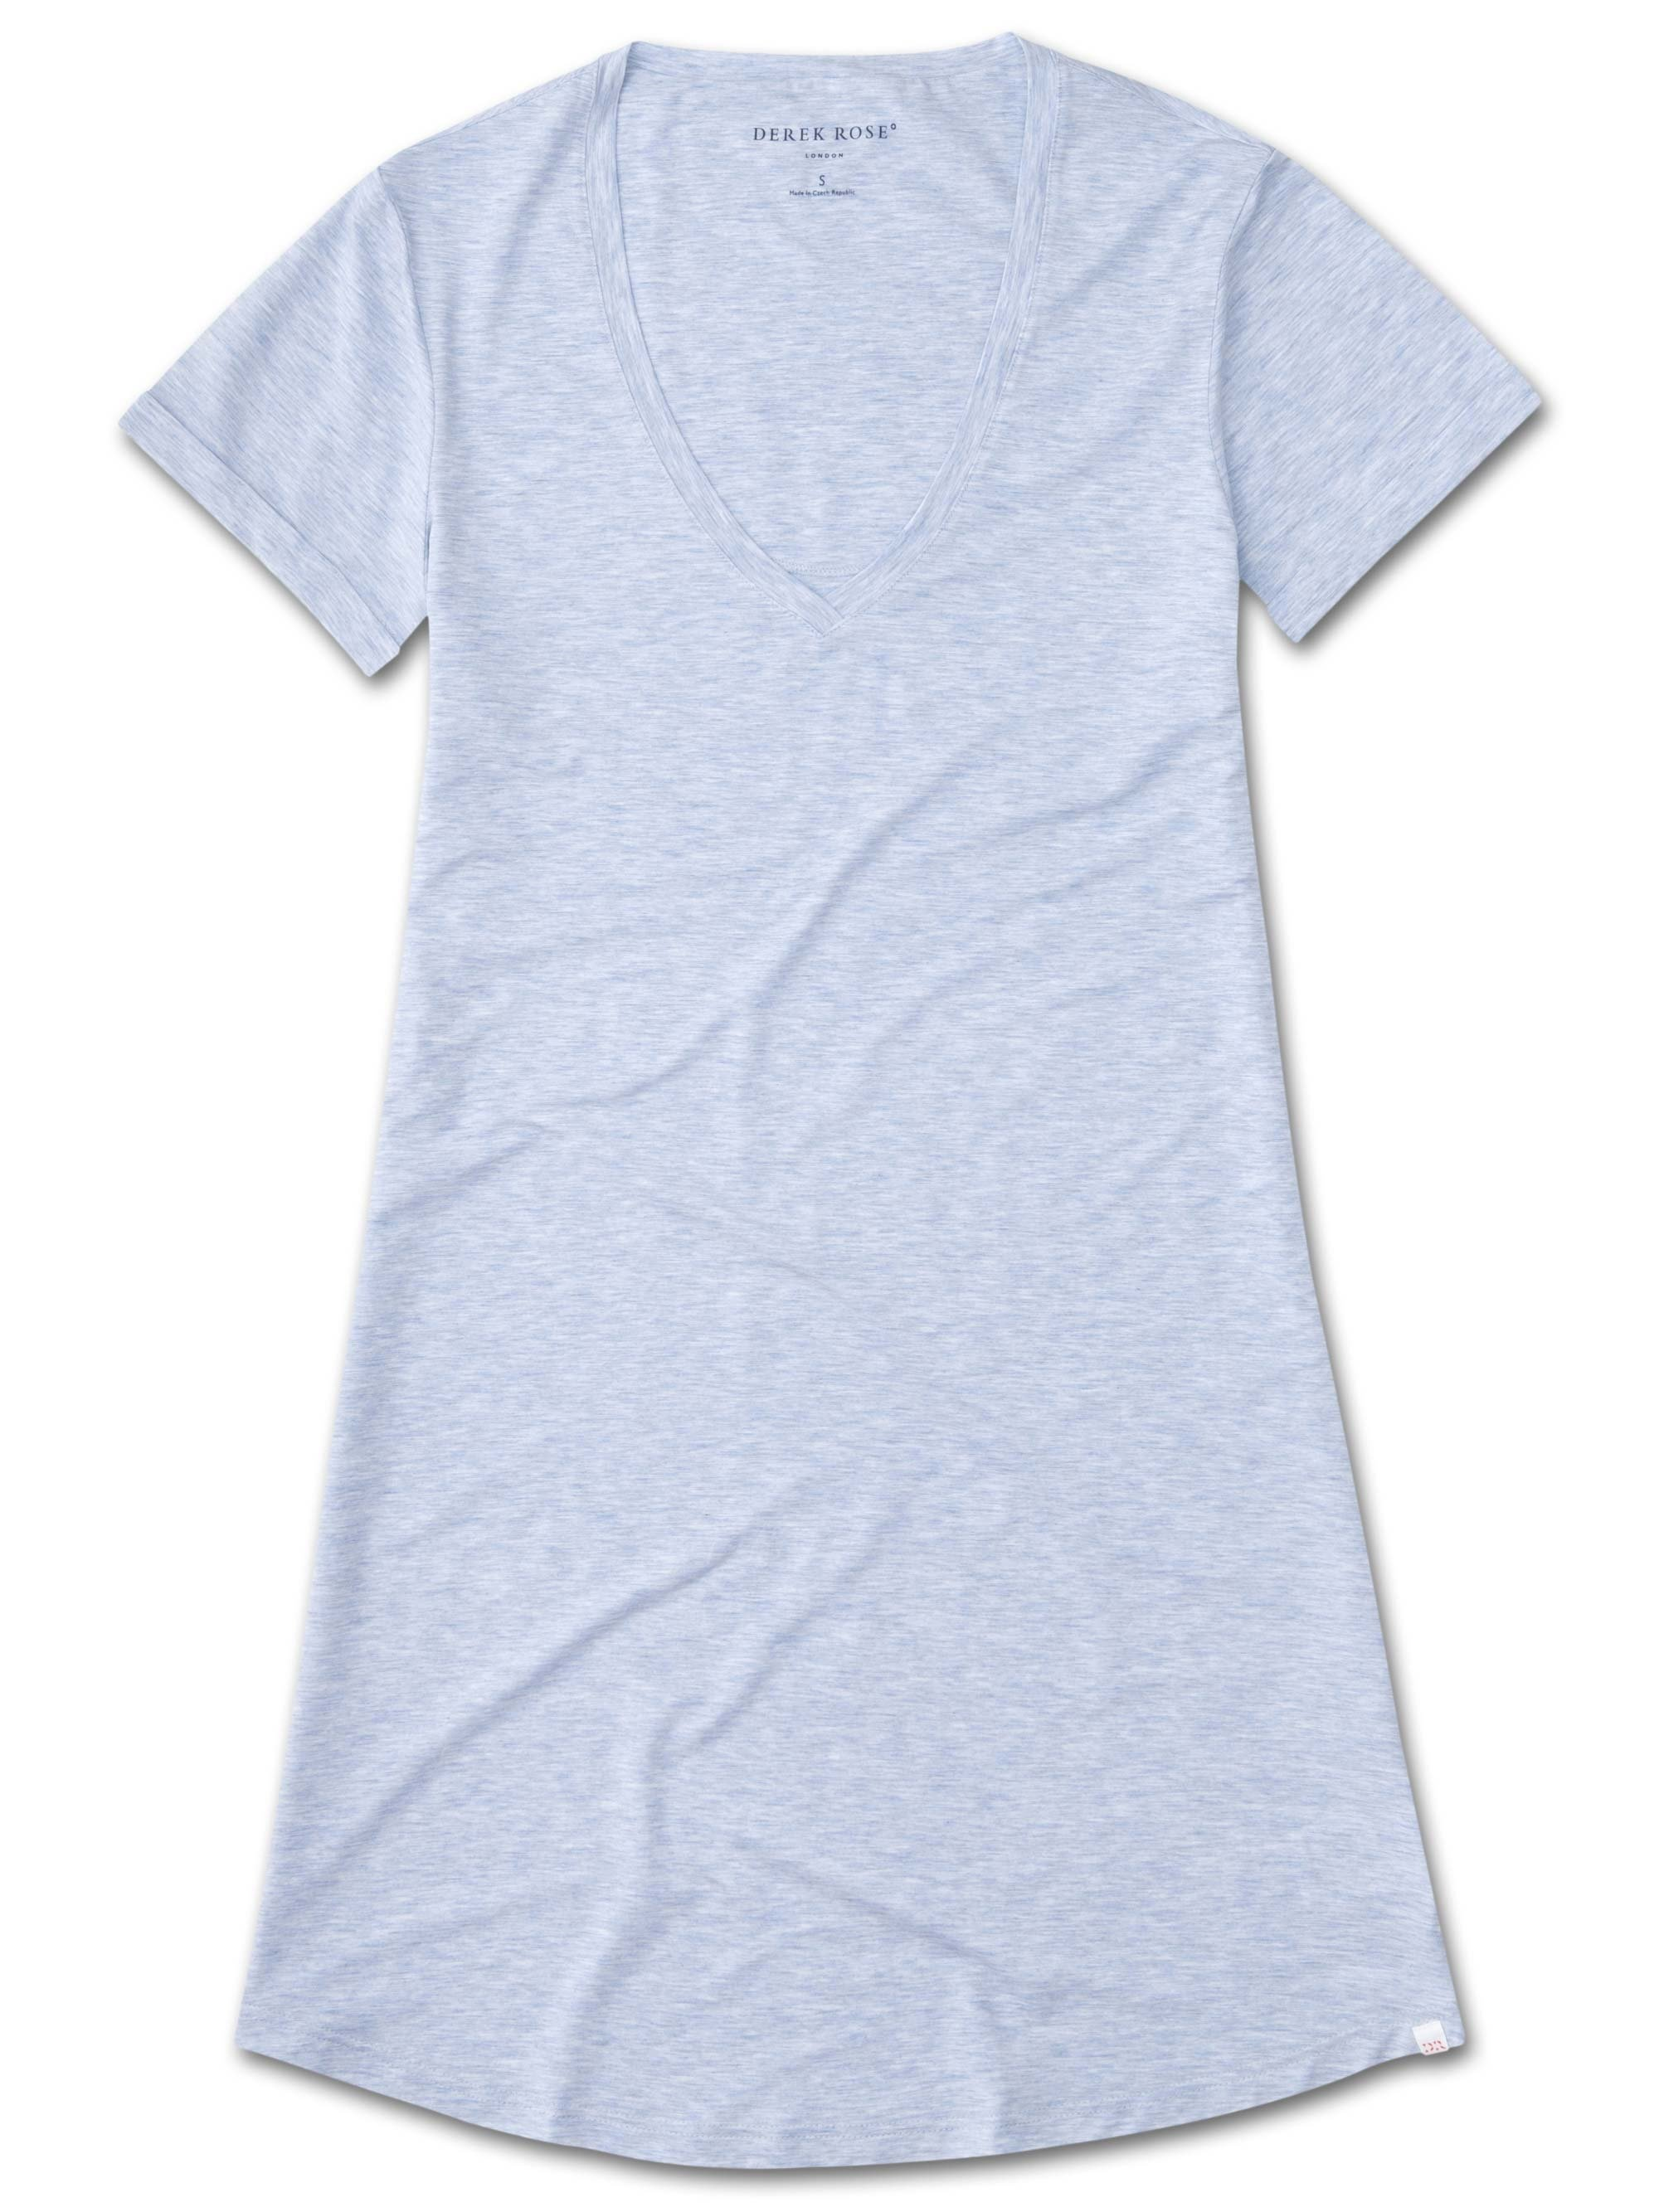 Women's V-Neck Sleep T-Shirt Ethan Micro Modal Stretch Blue